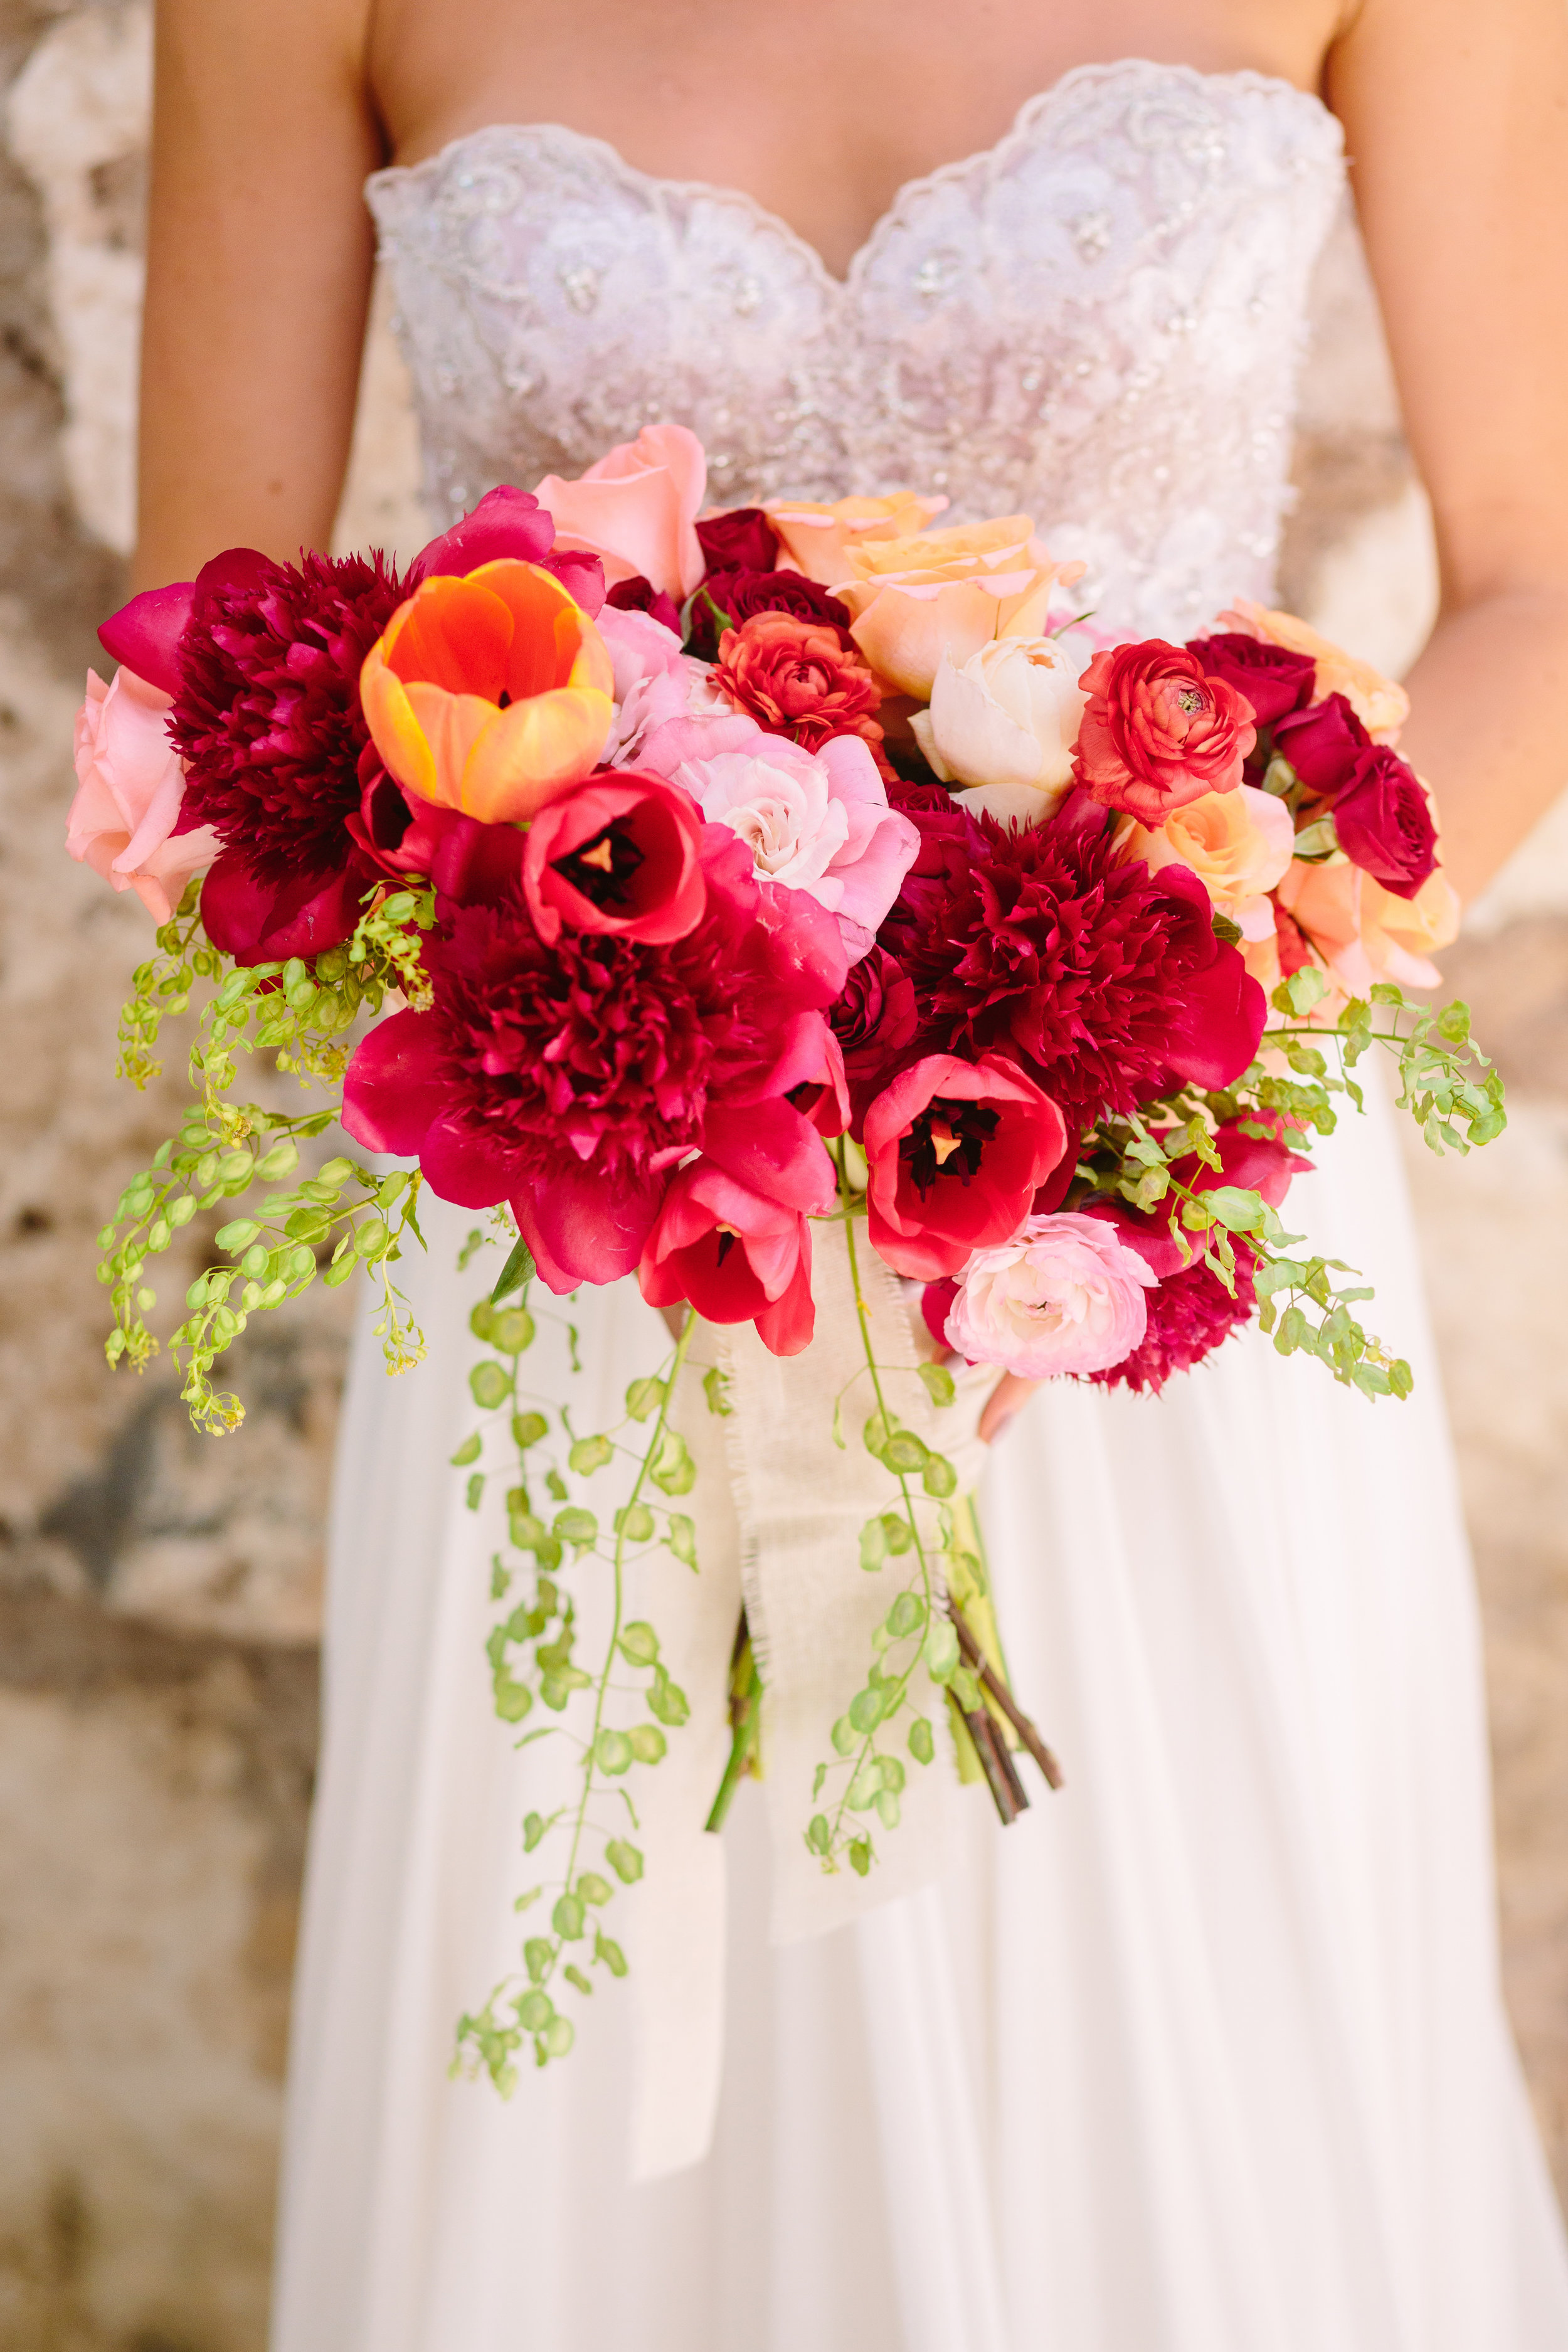 tulum-wedding-beach-bridal-bouquet.jpg